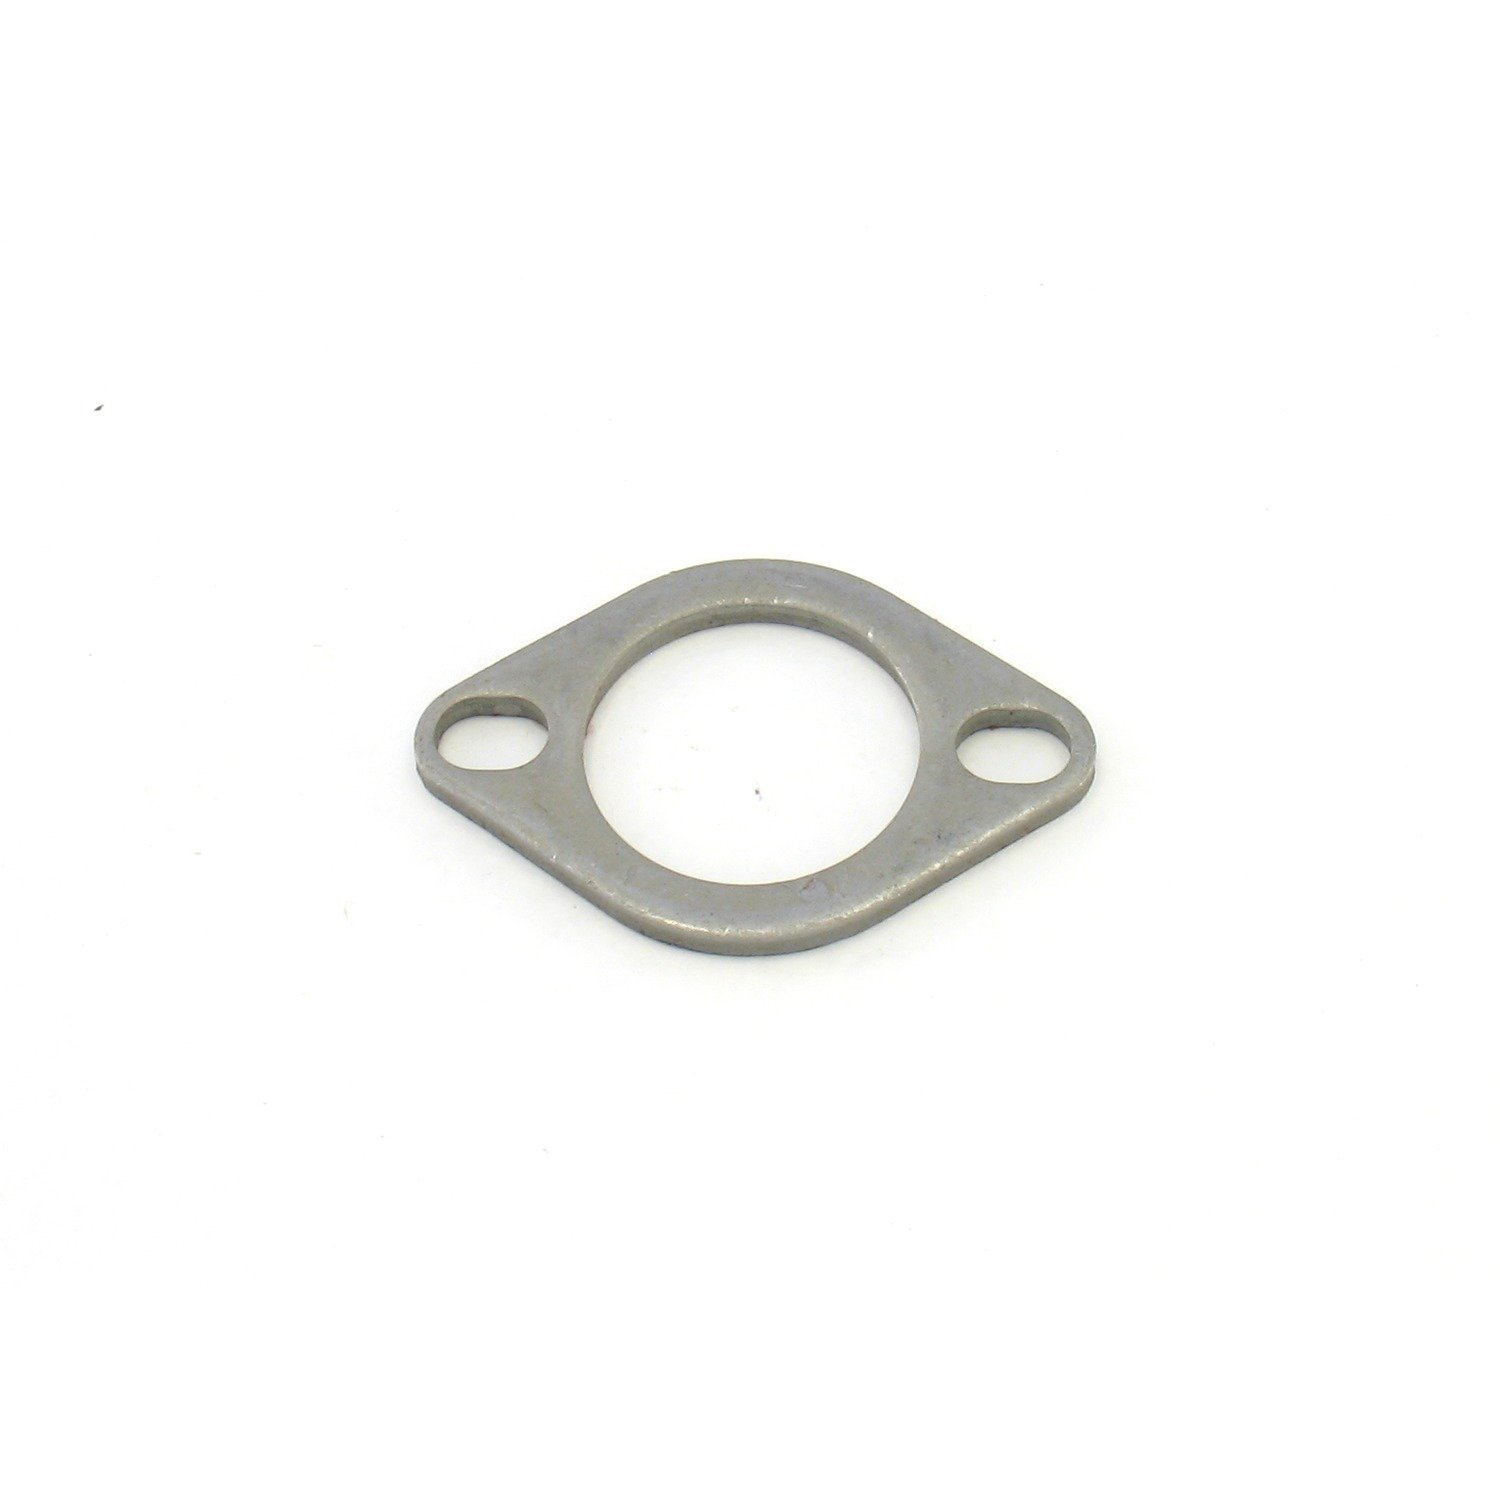 Patriot H7257 2-Inch Exhaust Collector Flange